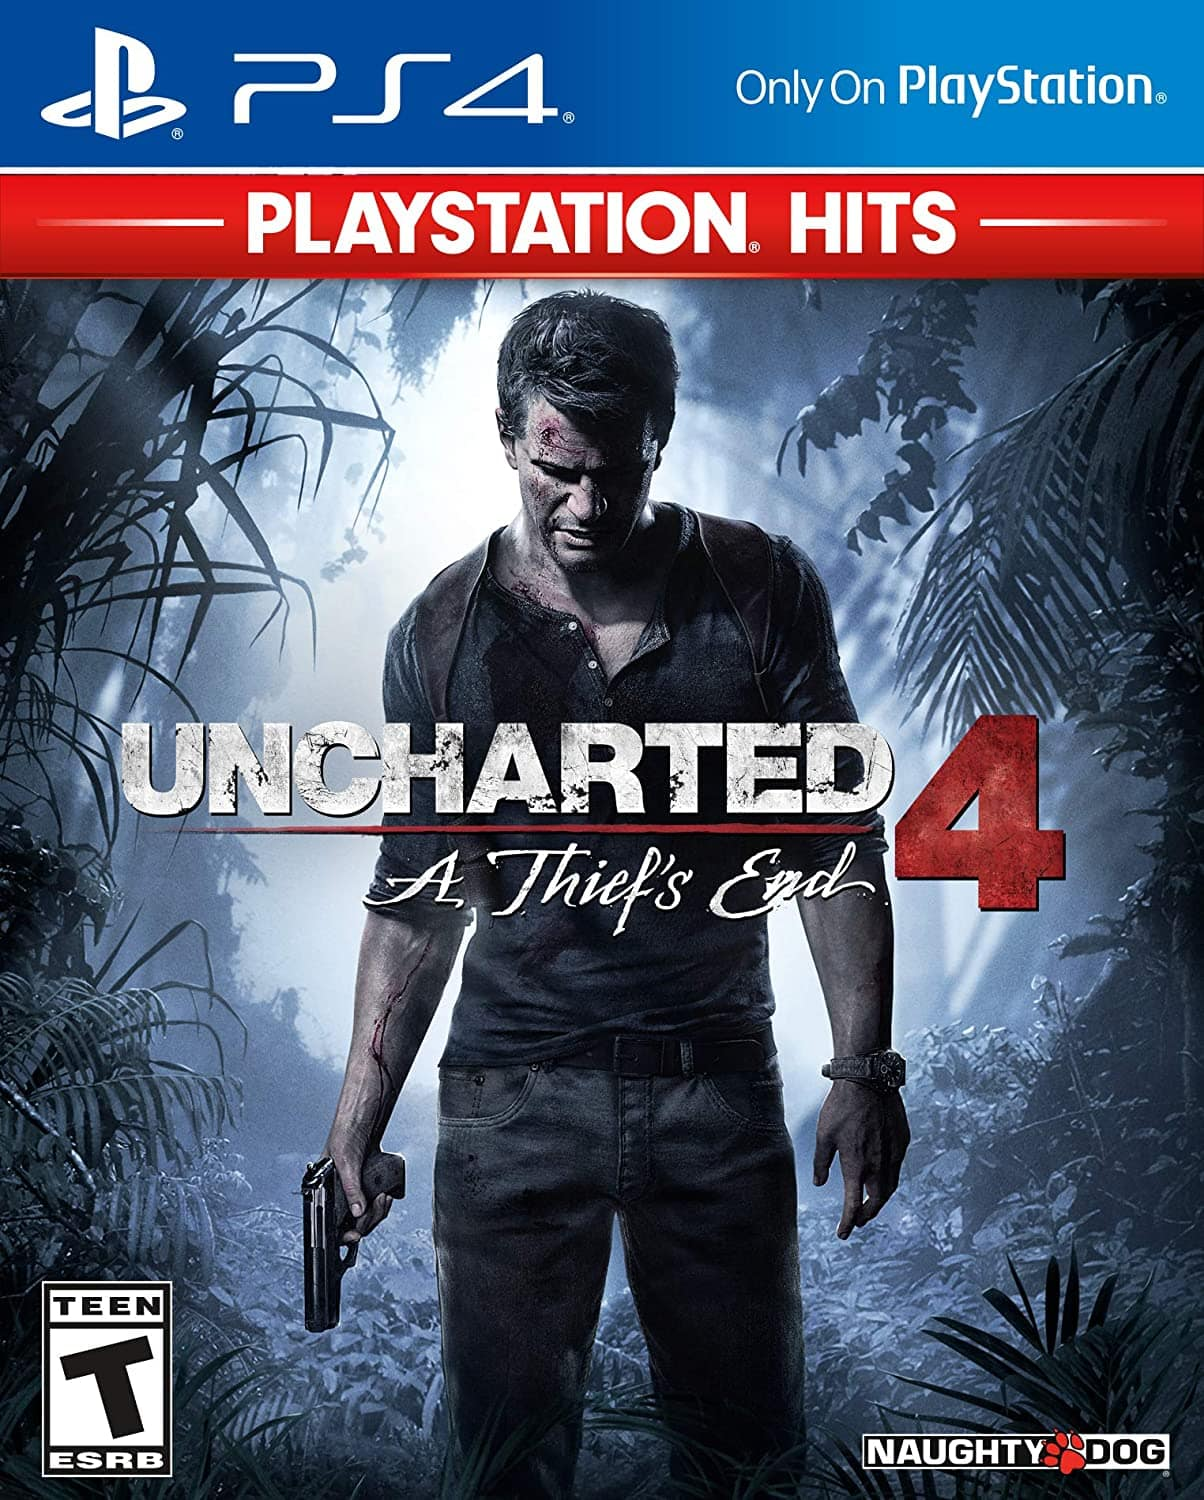 Uncharted 4: A Thief's End $10 - Amazon